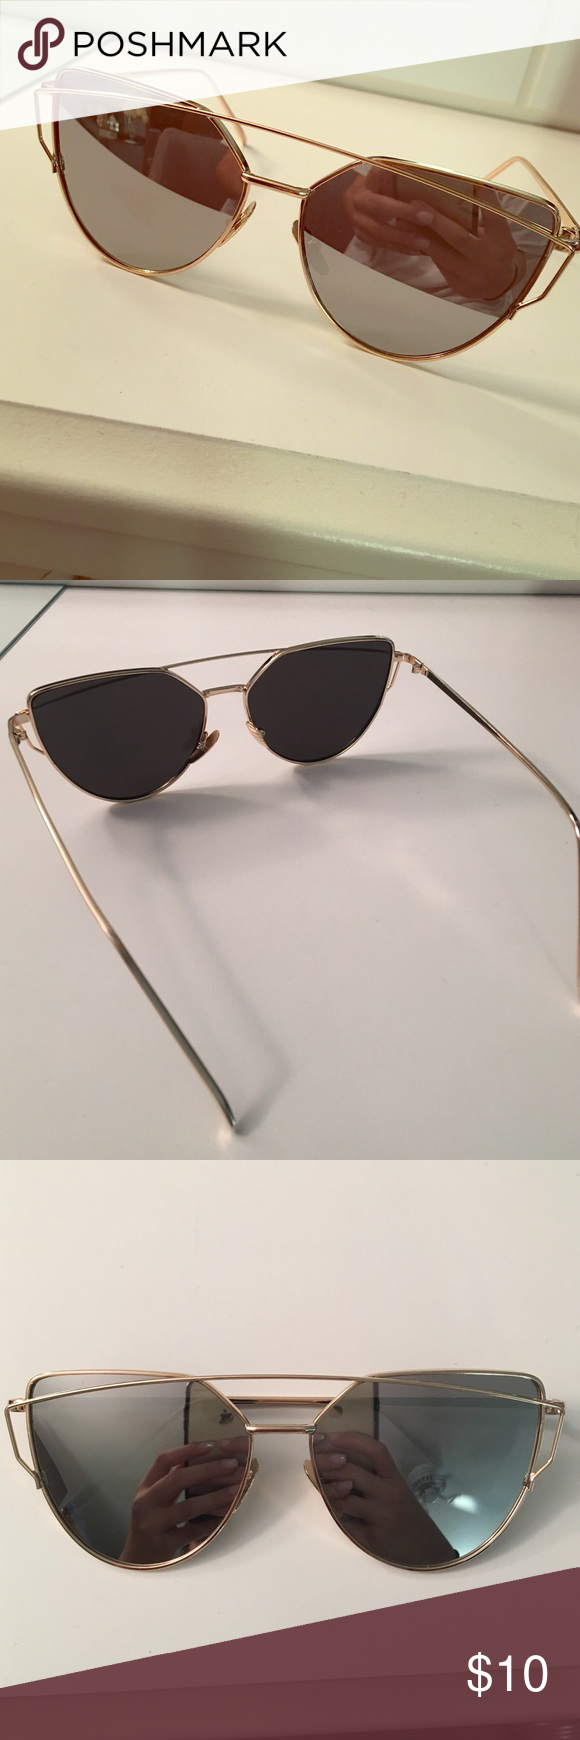 black and gold aviators  Black and gold cat-eye aviators Black and gold cat eye aviators ...